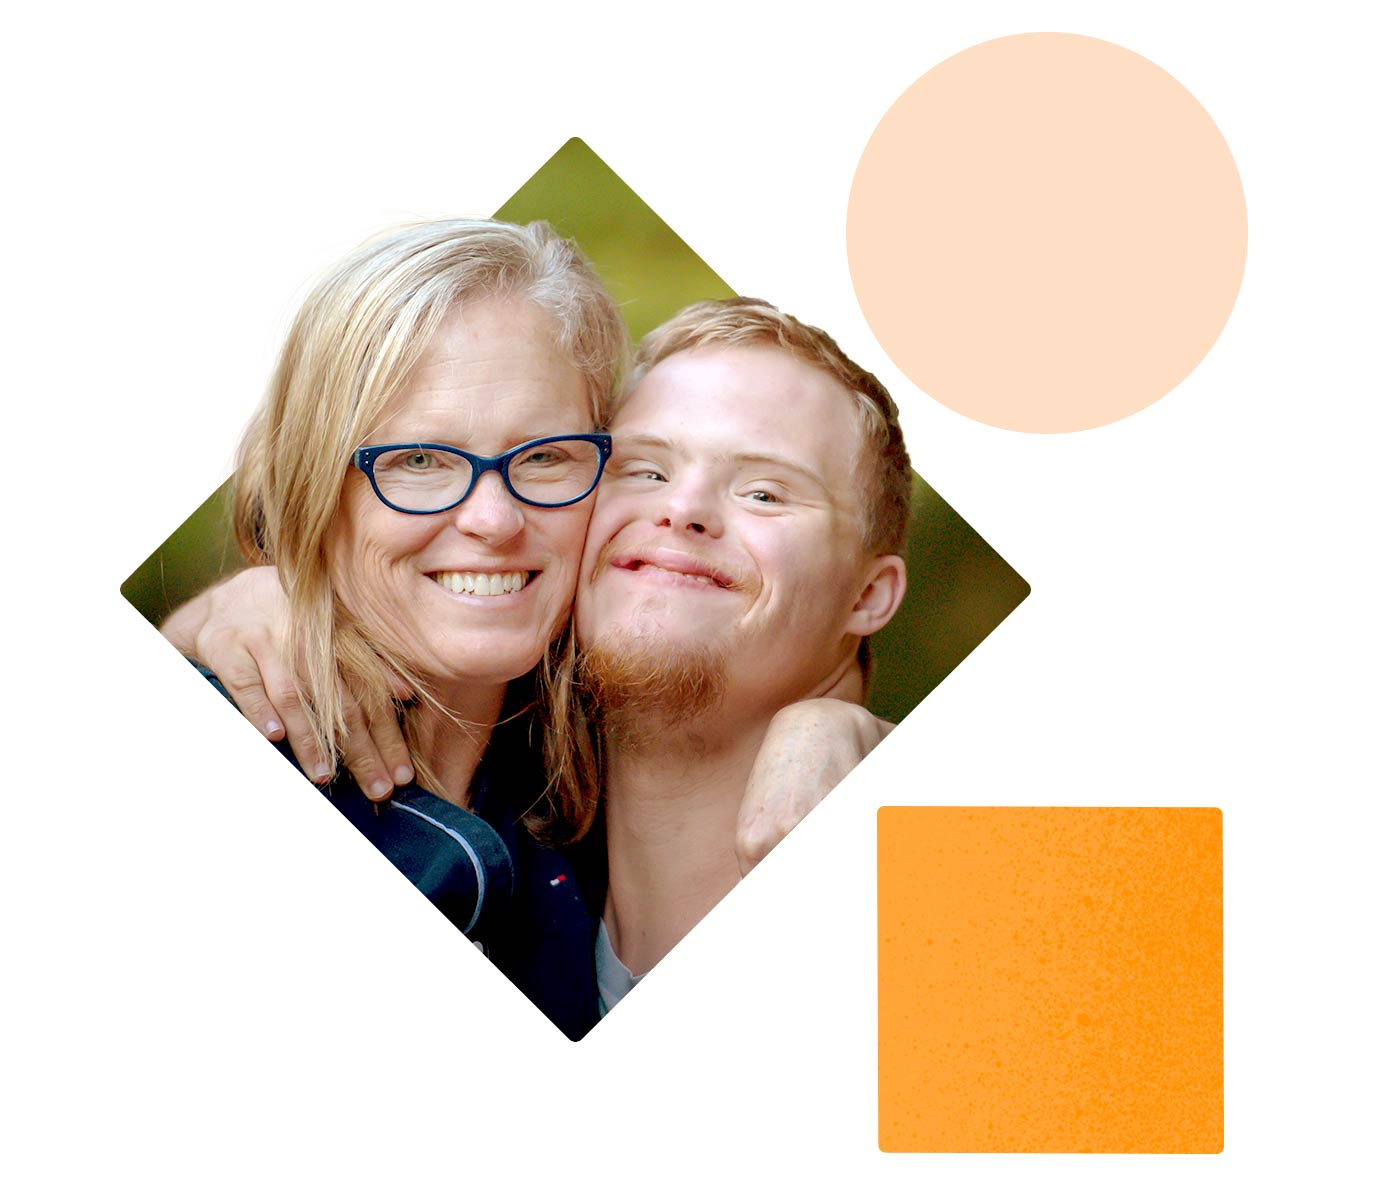 A woman holds her son close as both of them grin at the camera. The son appears to have down syndrome.